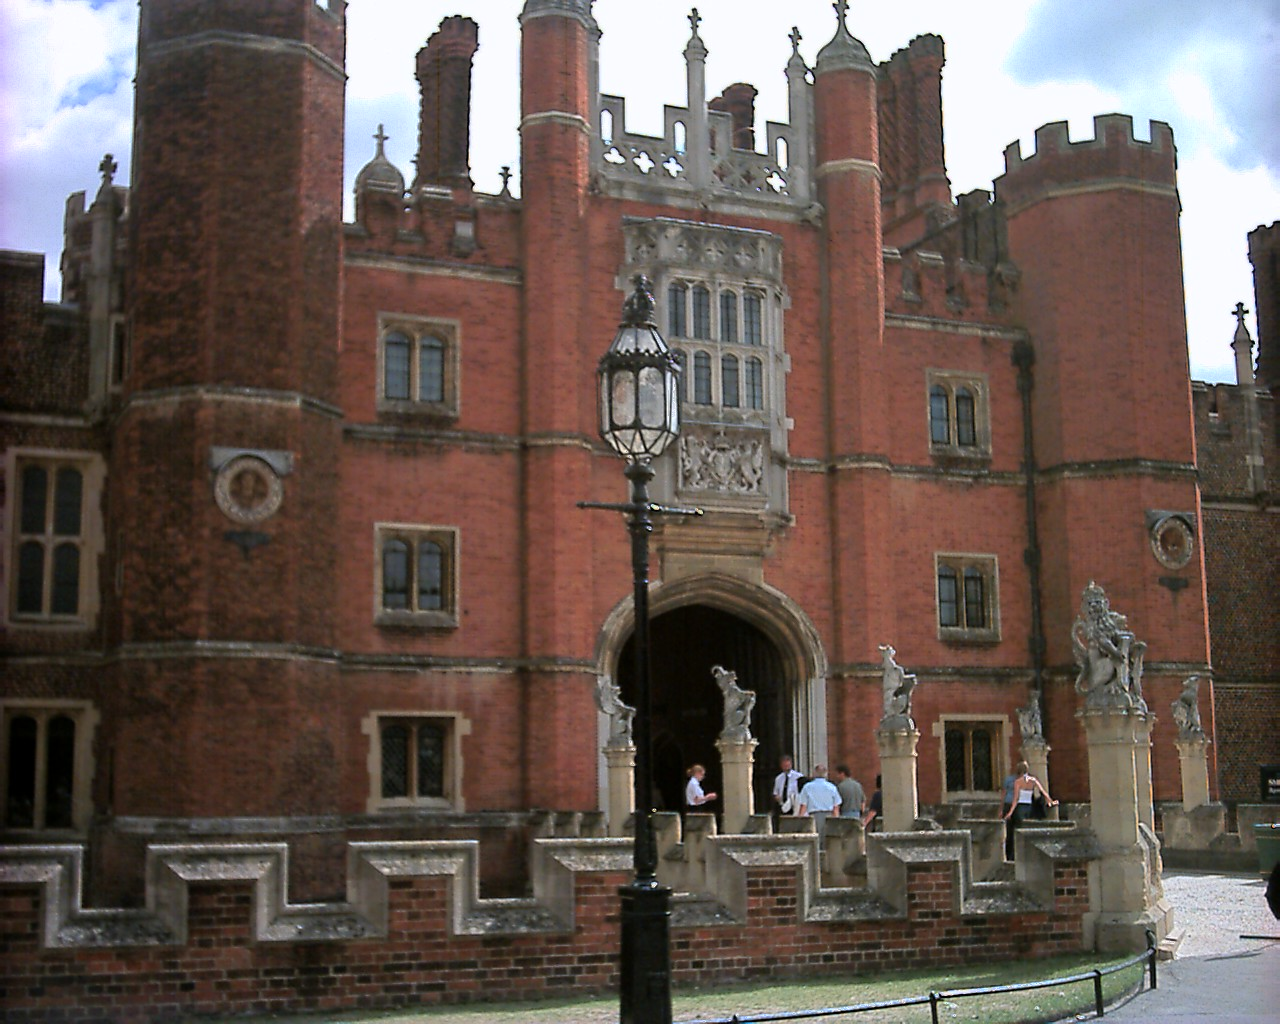 Hampton Court Palace entrance. Copyright MG Mason 2005 approx